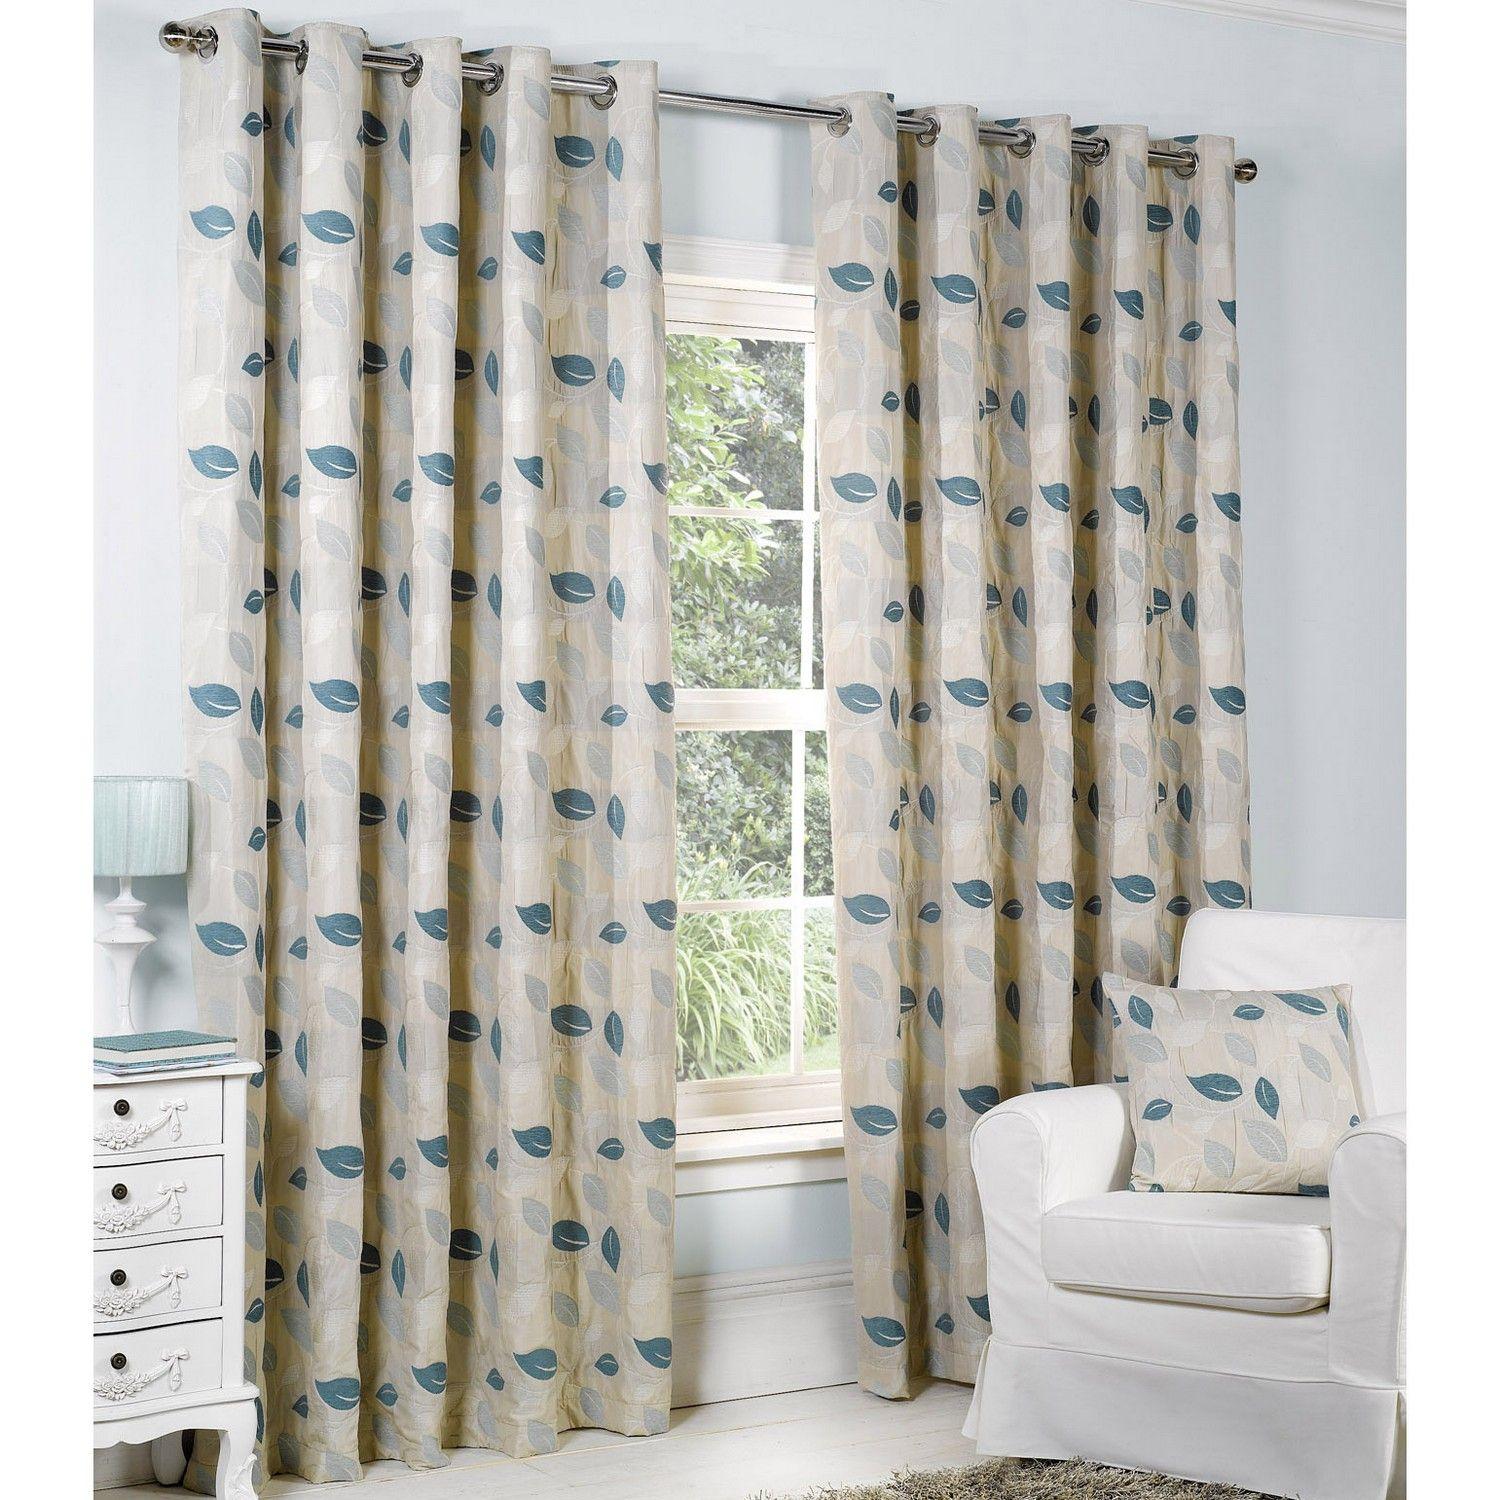 Buy Allen lined eyelet curtains Blue with matching accessories ...